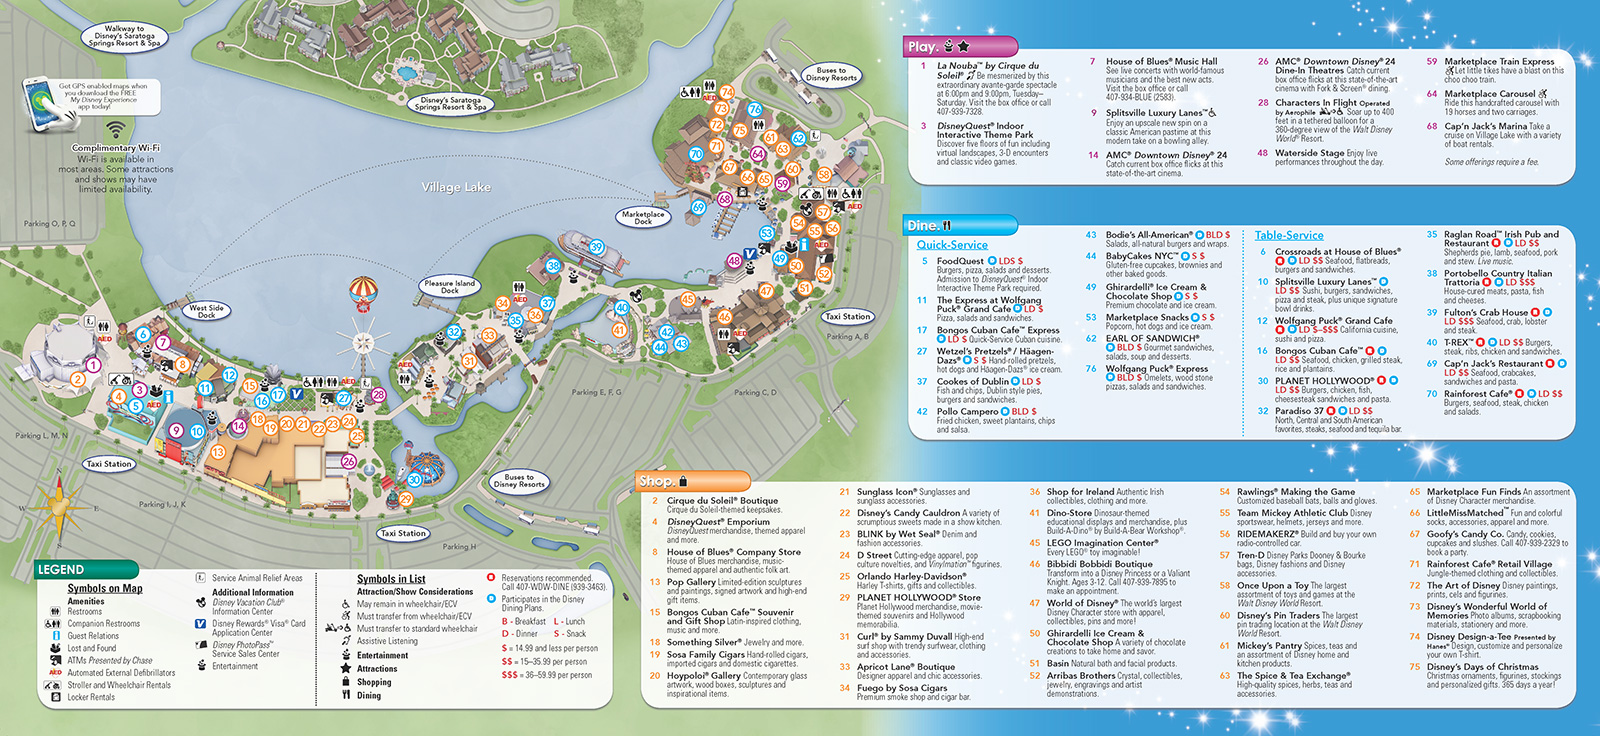 New 2013 park maps and times guides photo 3 of 20 gumiabroncs Images